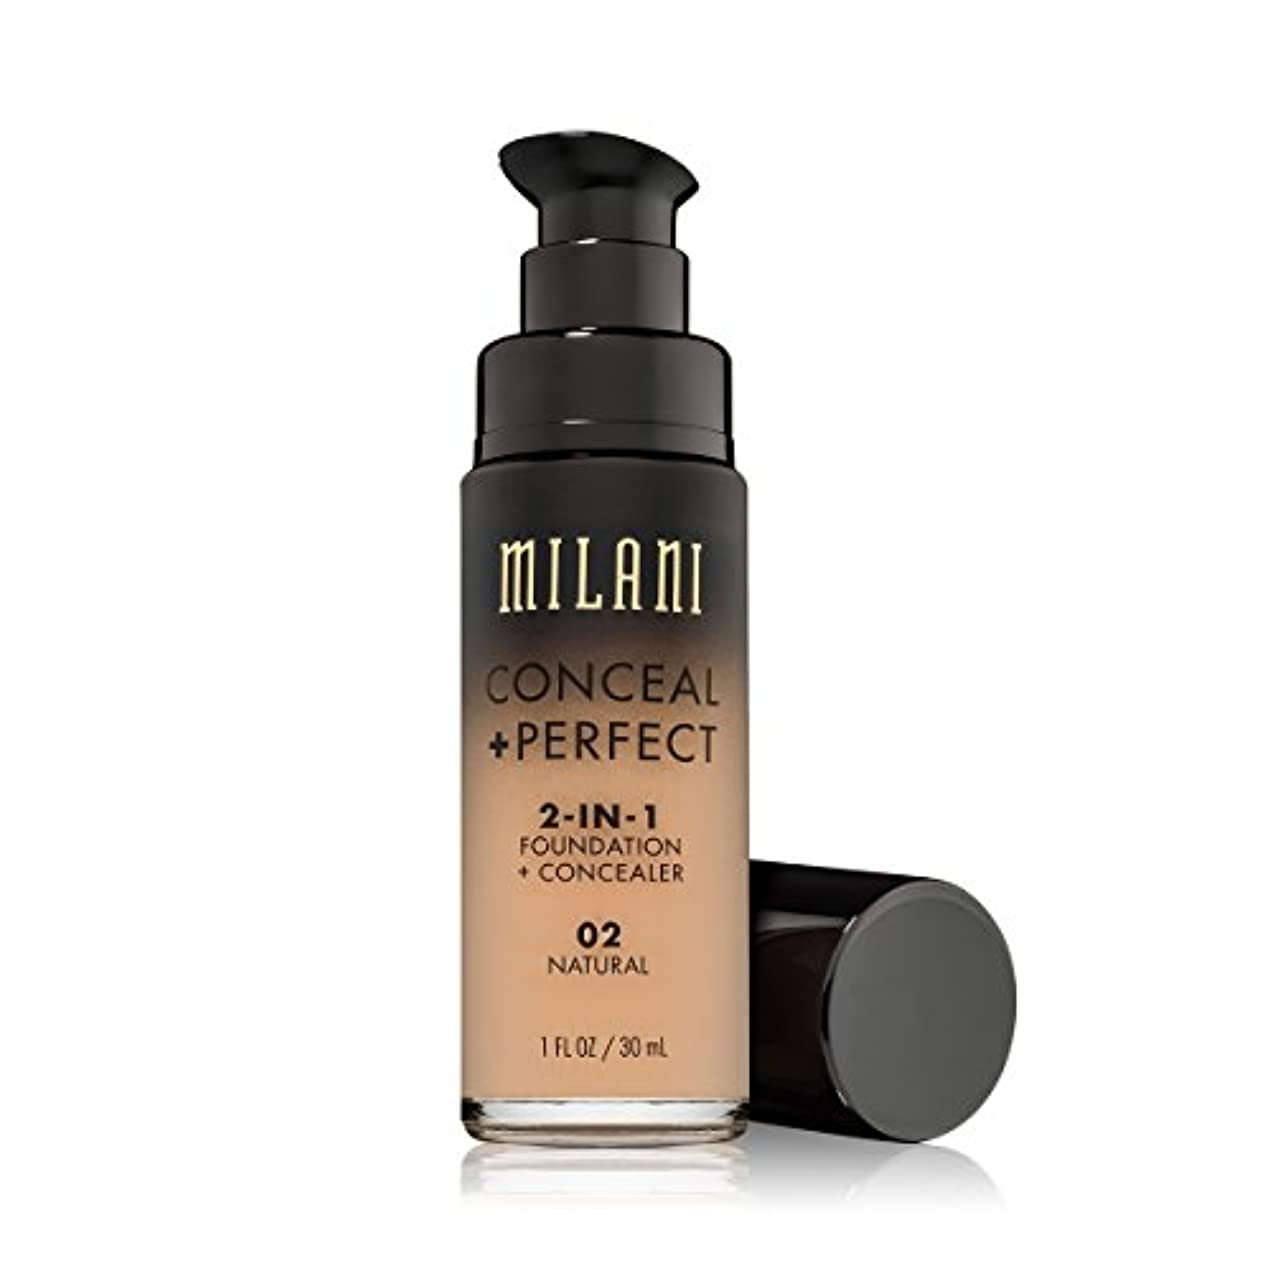 MILANI Conceal + Perfect 2-In-1 Foundation + Concealer - Natural (並行輸入品)